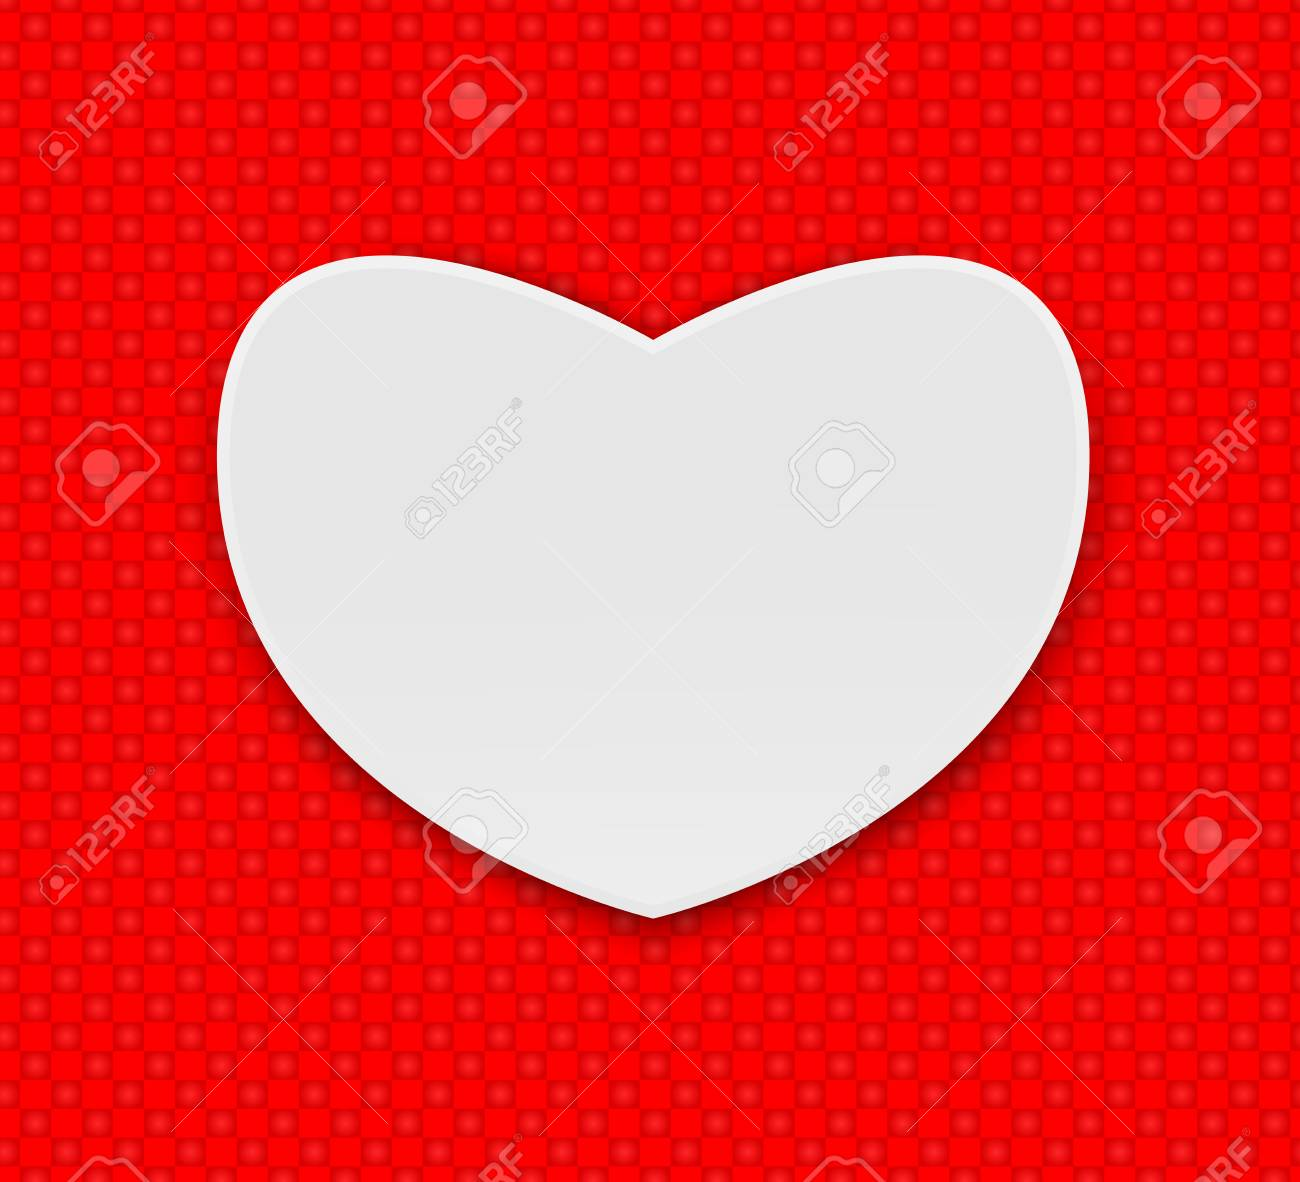 Valentines Day Heart Realistic Vector Illustrations Hearts On